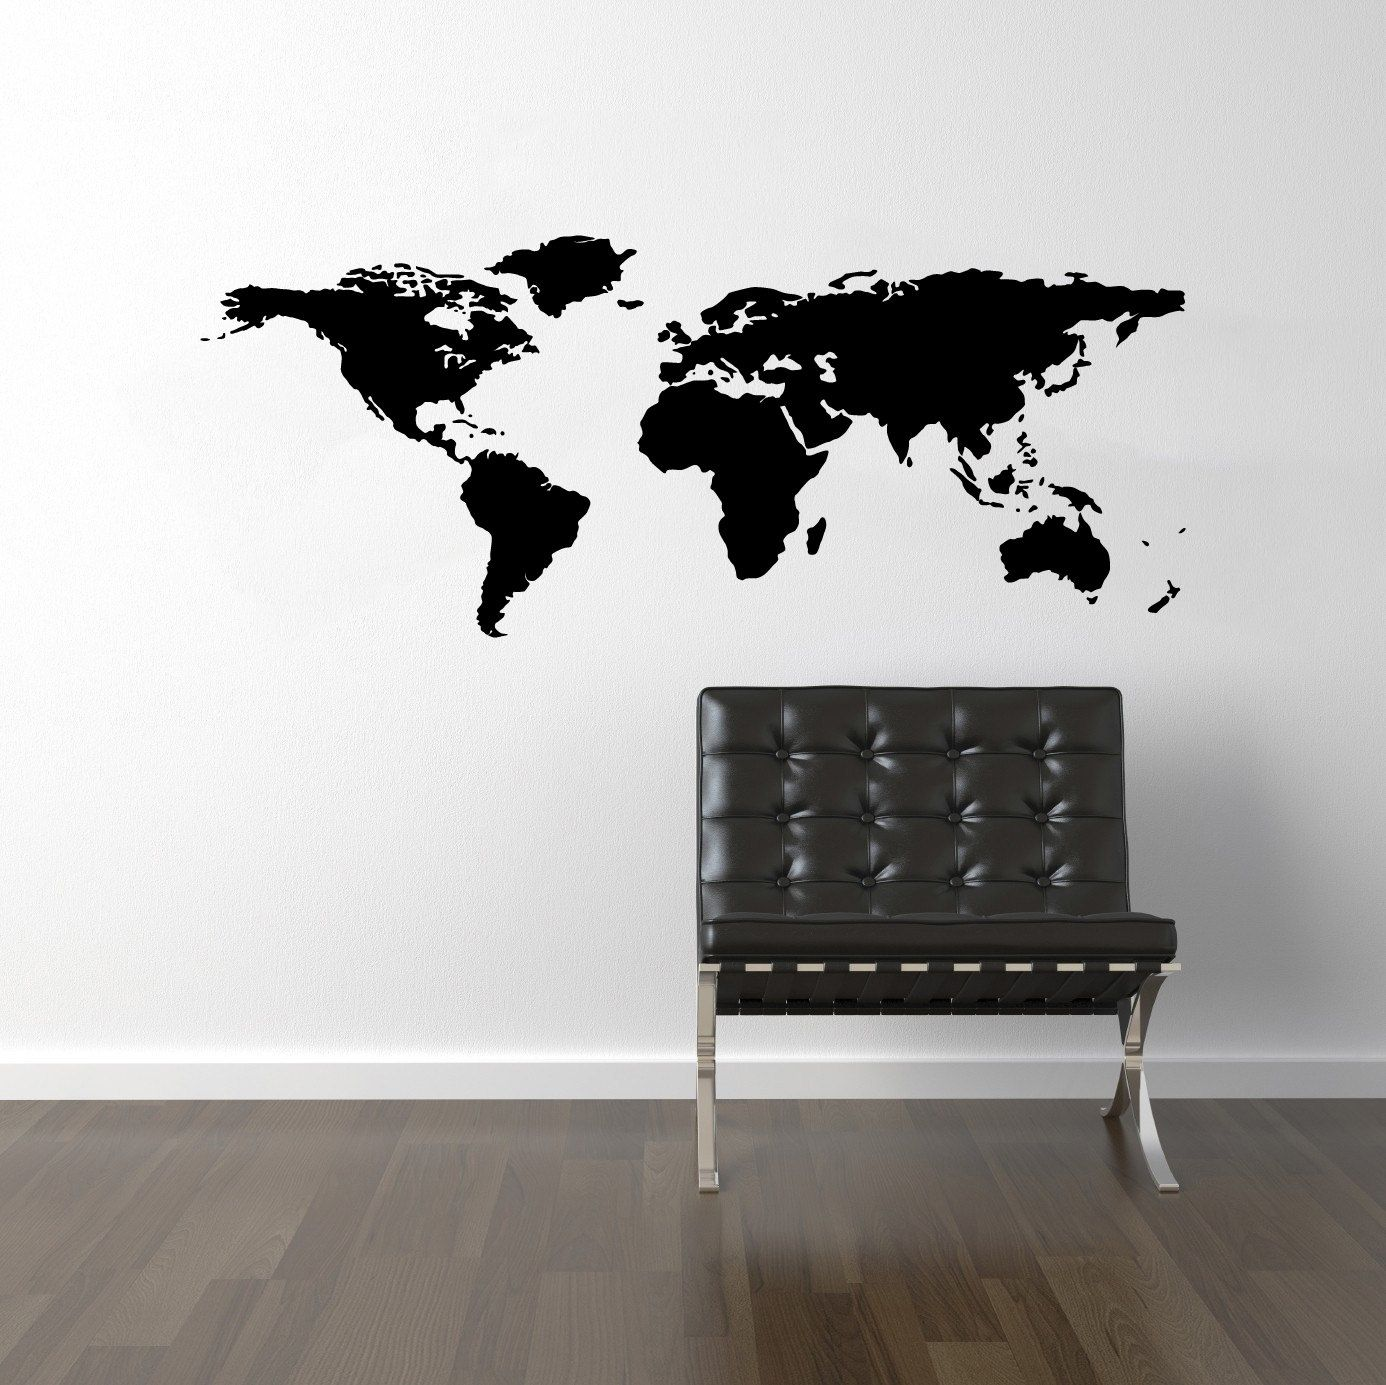 World Map Wall Decal   World Map Decal   World Decal   Travel Bedroom  Interior Office